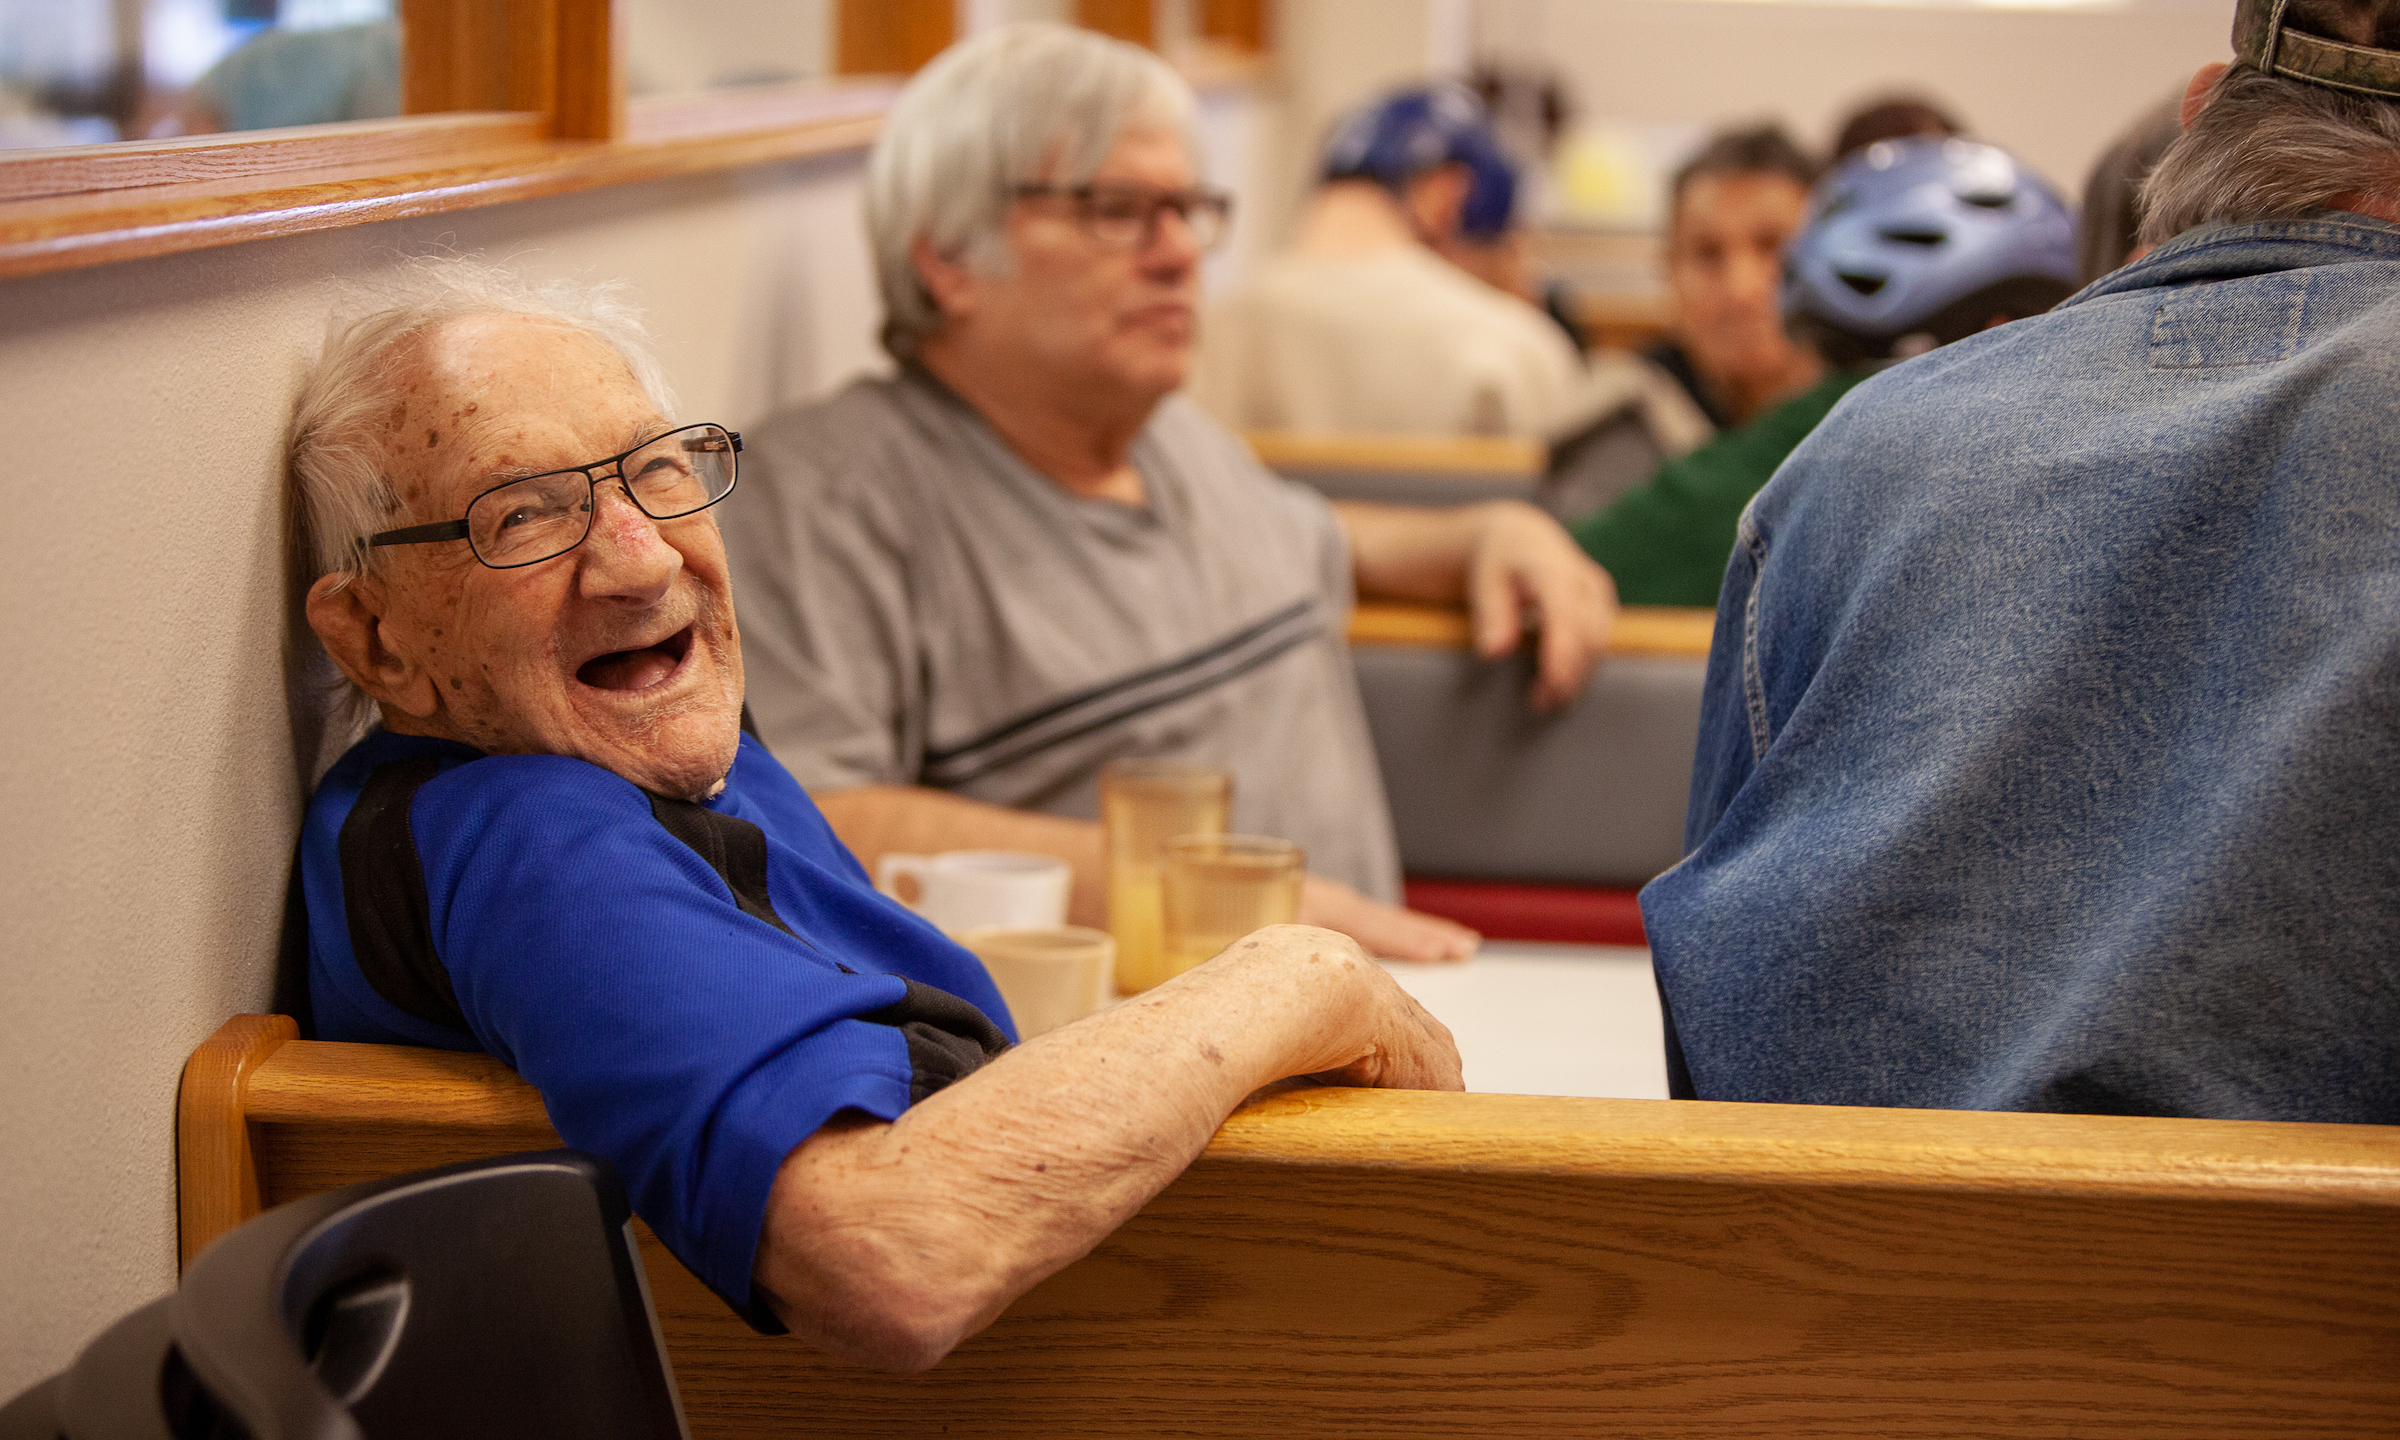 man at a table laughing